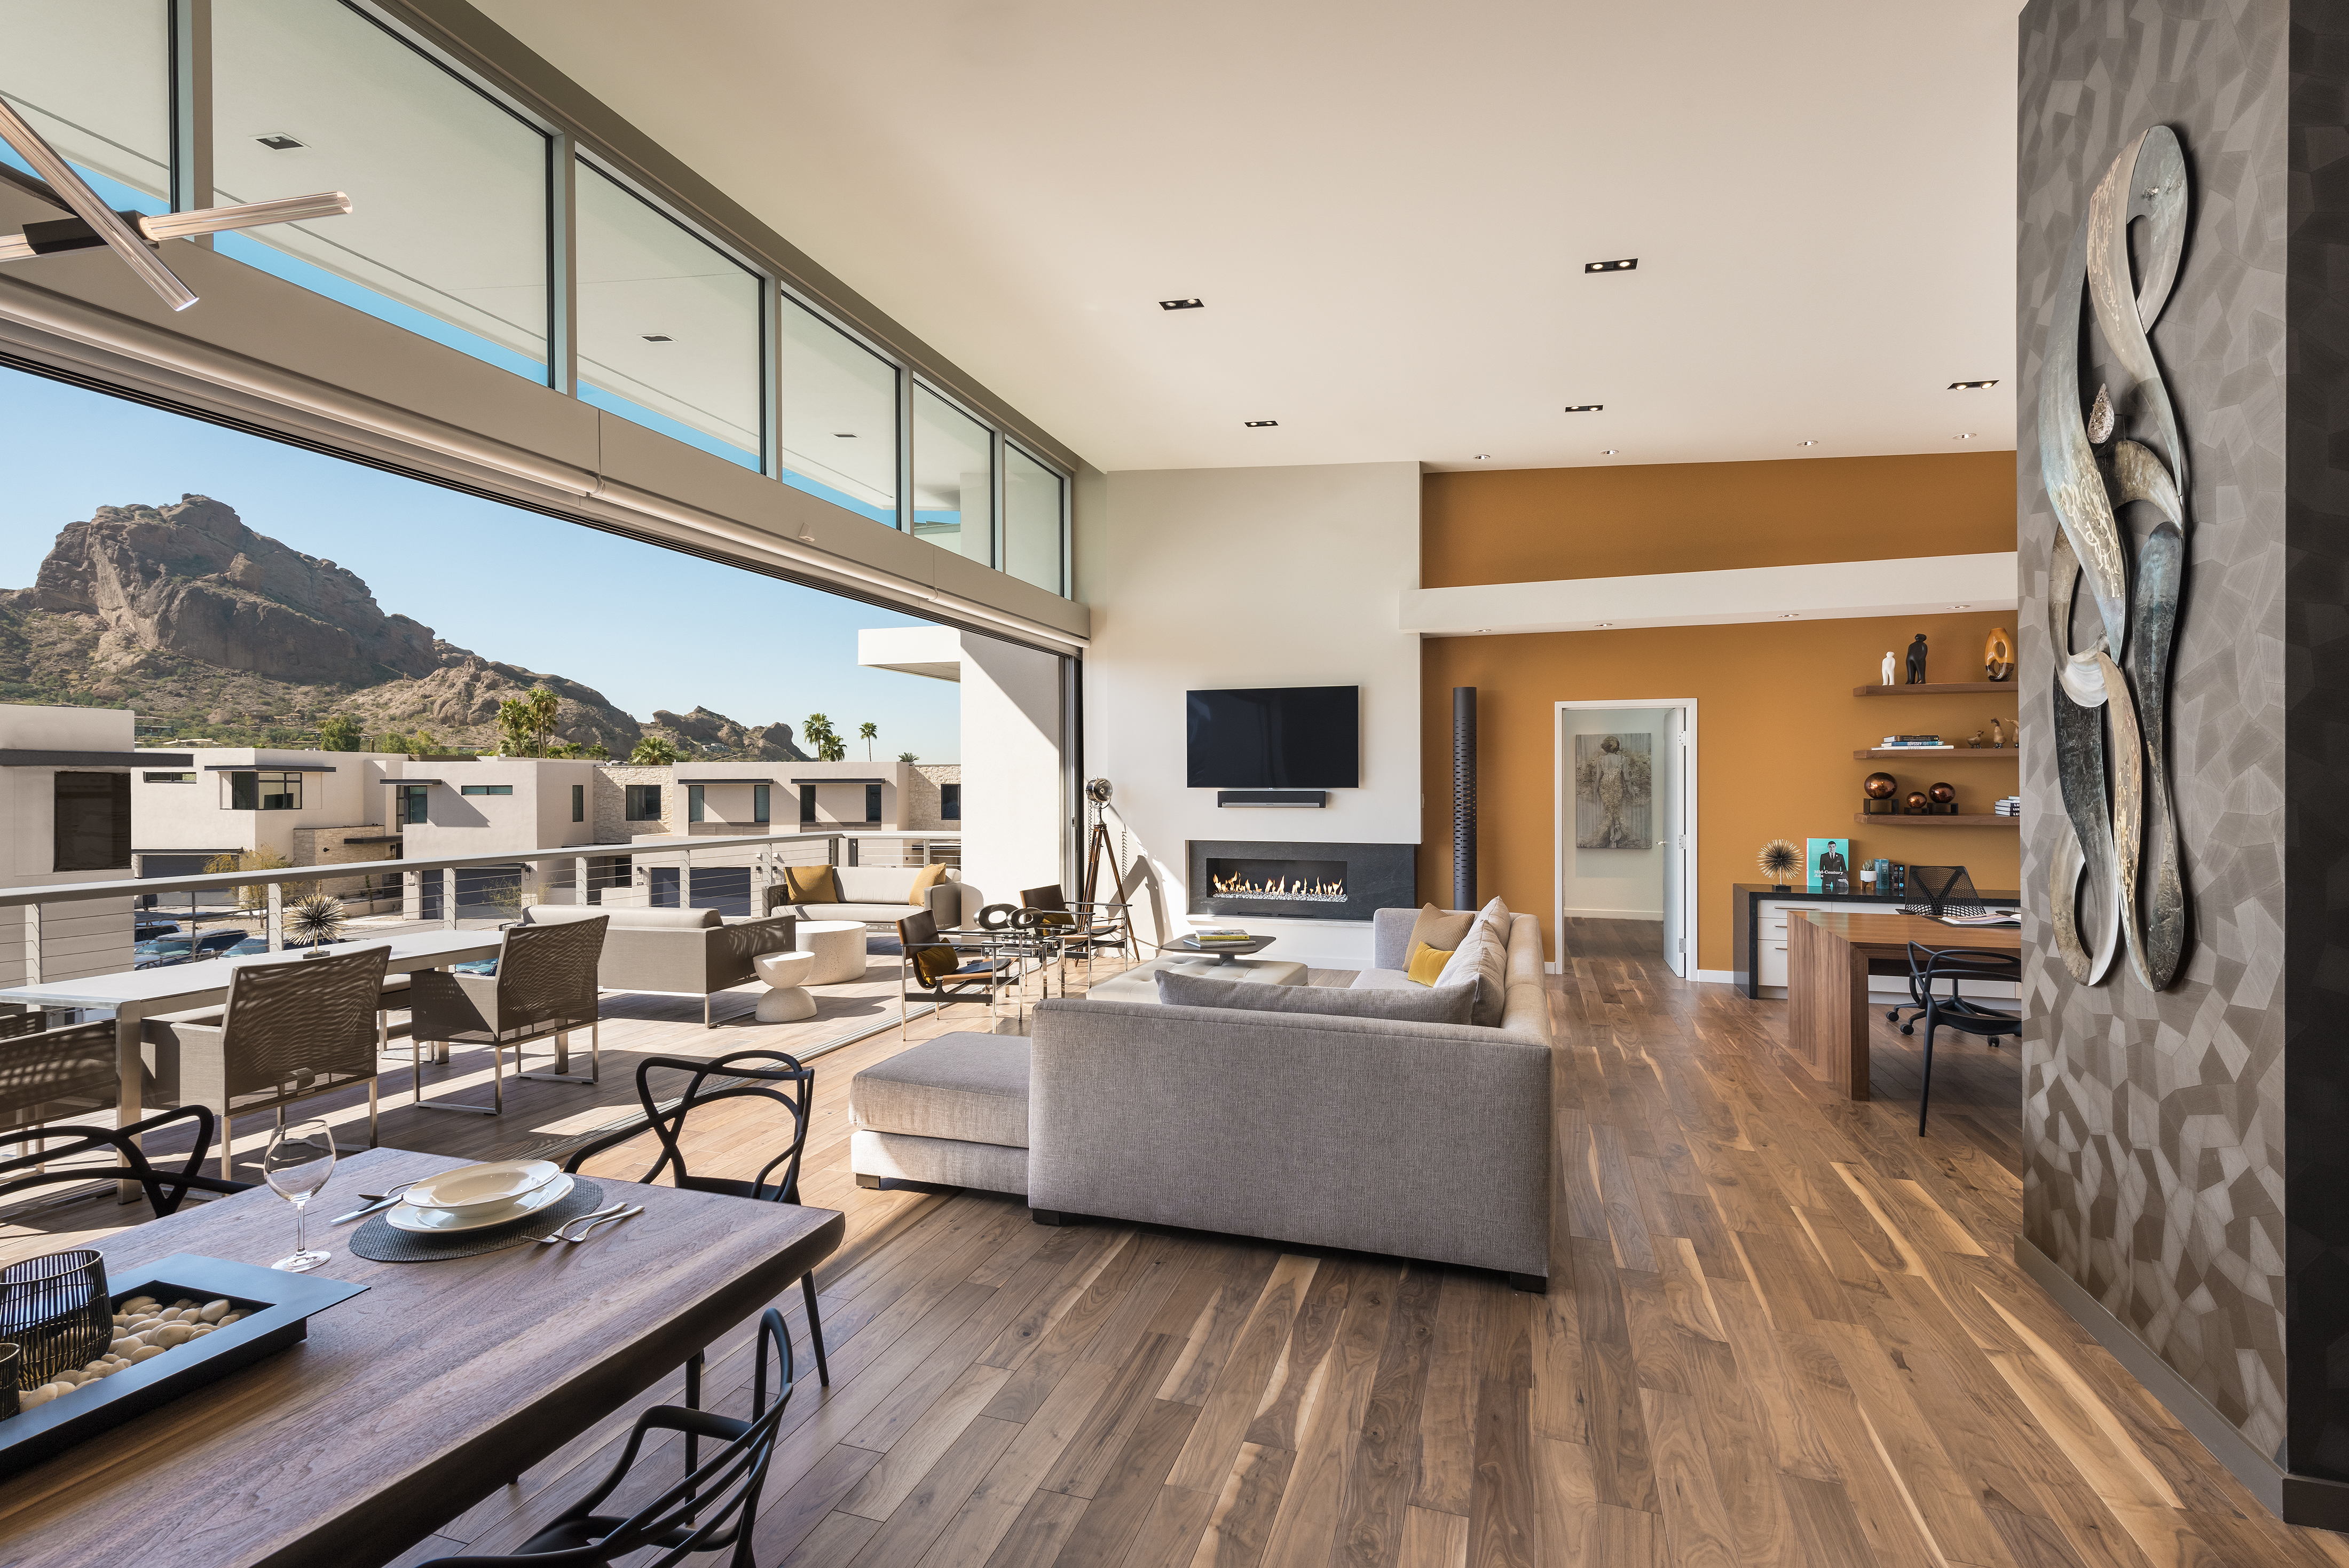 mountain shadows completes resort condominiums and suites, elevating